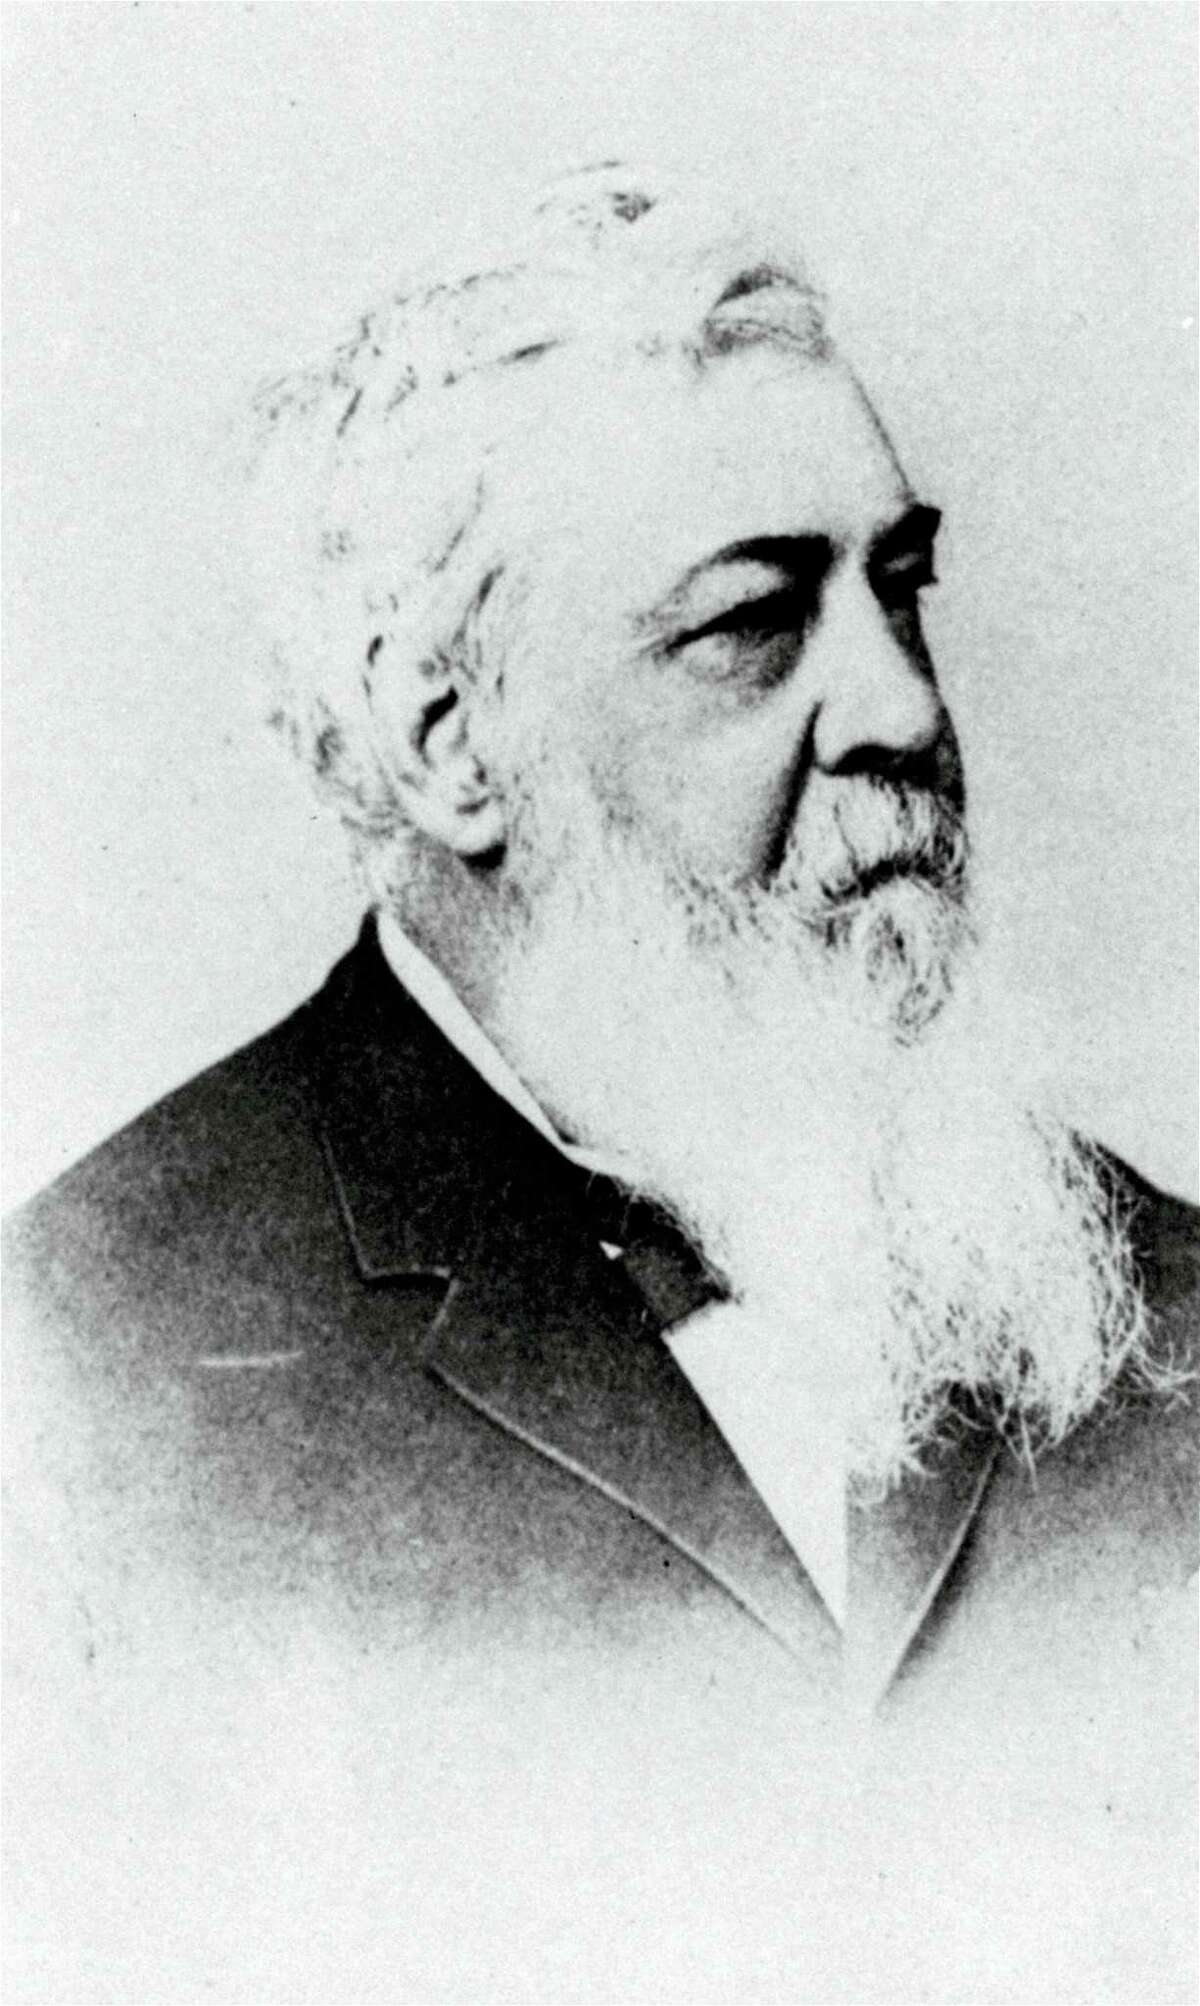 """This is an 1860 file photo showing Alexander J. Cartwright. Coinciding with the start of the major league season, a set of game-changing documents went up for sale this week. Their authenticity and significance are verified by experts including John Thorn, Major League Baseball's official historian. The documents were authored by Daniel Lucius """"Doc"""" Adams, making him the founding father of America's pastime, not Alexander Cartwright, who now is credited."""